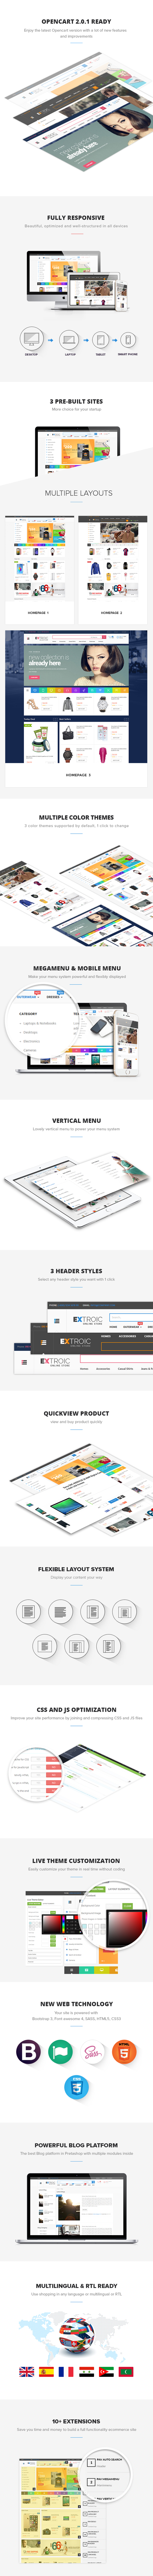 opencart theme core features